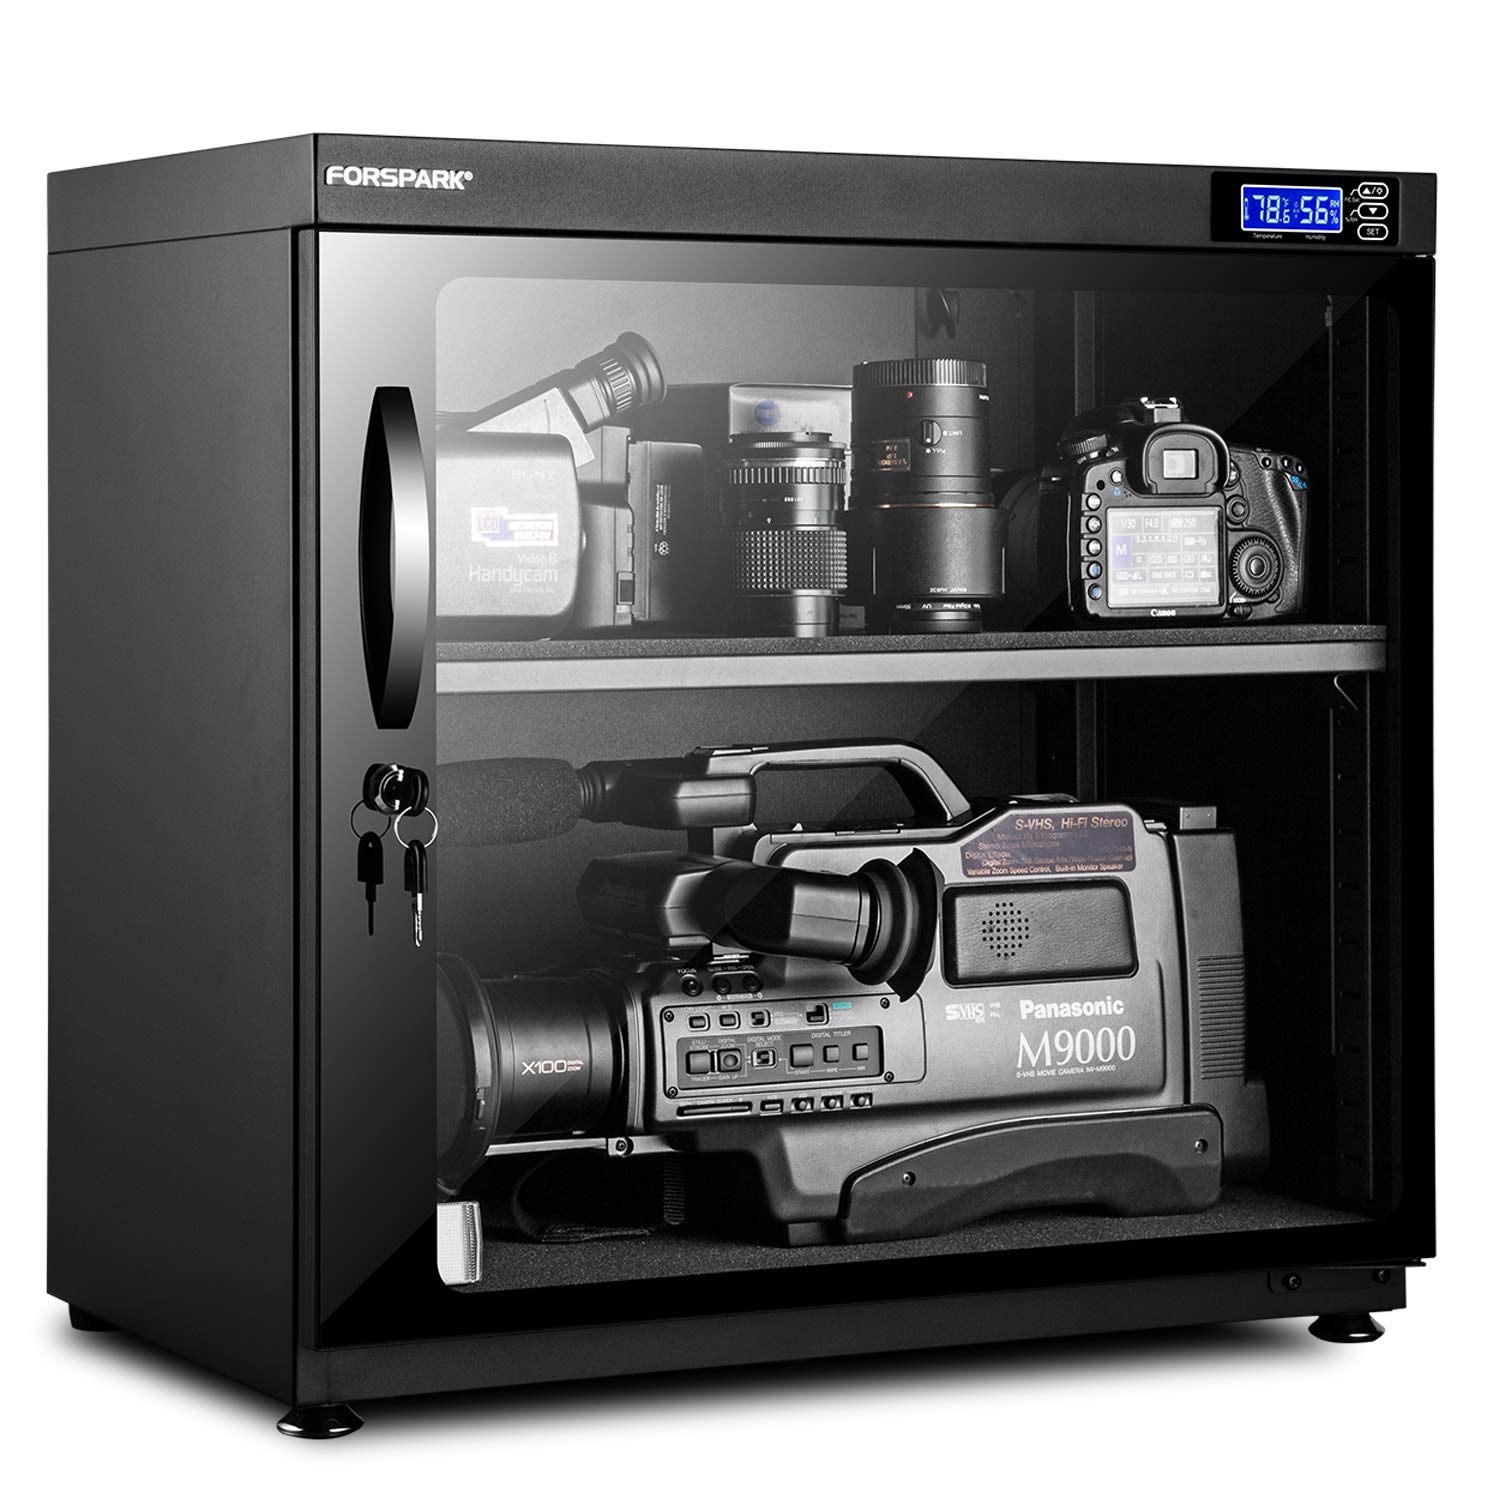 FORSPARK Camera Dehumidifying Dry Cabinet 15W 120L - Noiseless and Energy Saving - for Camera Lens and Electronic Equipment Storage